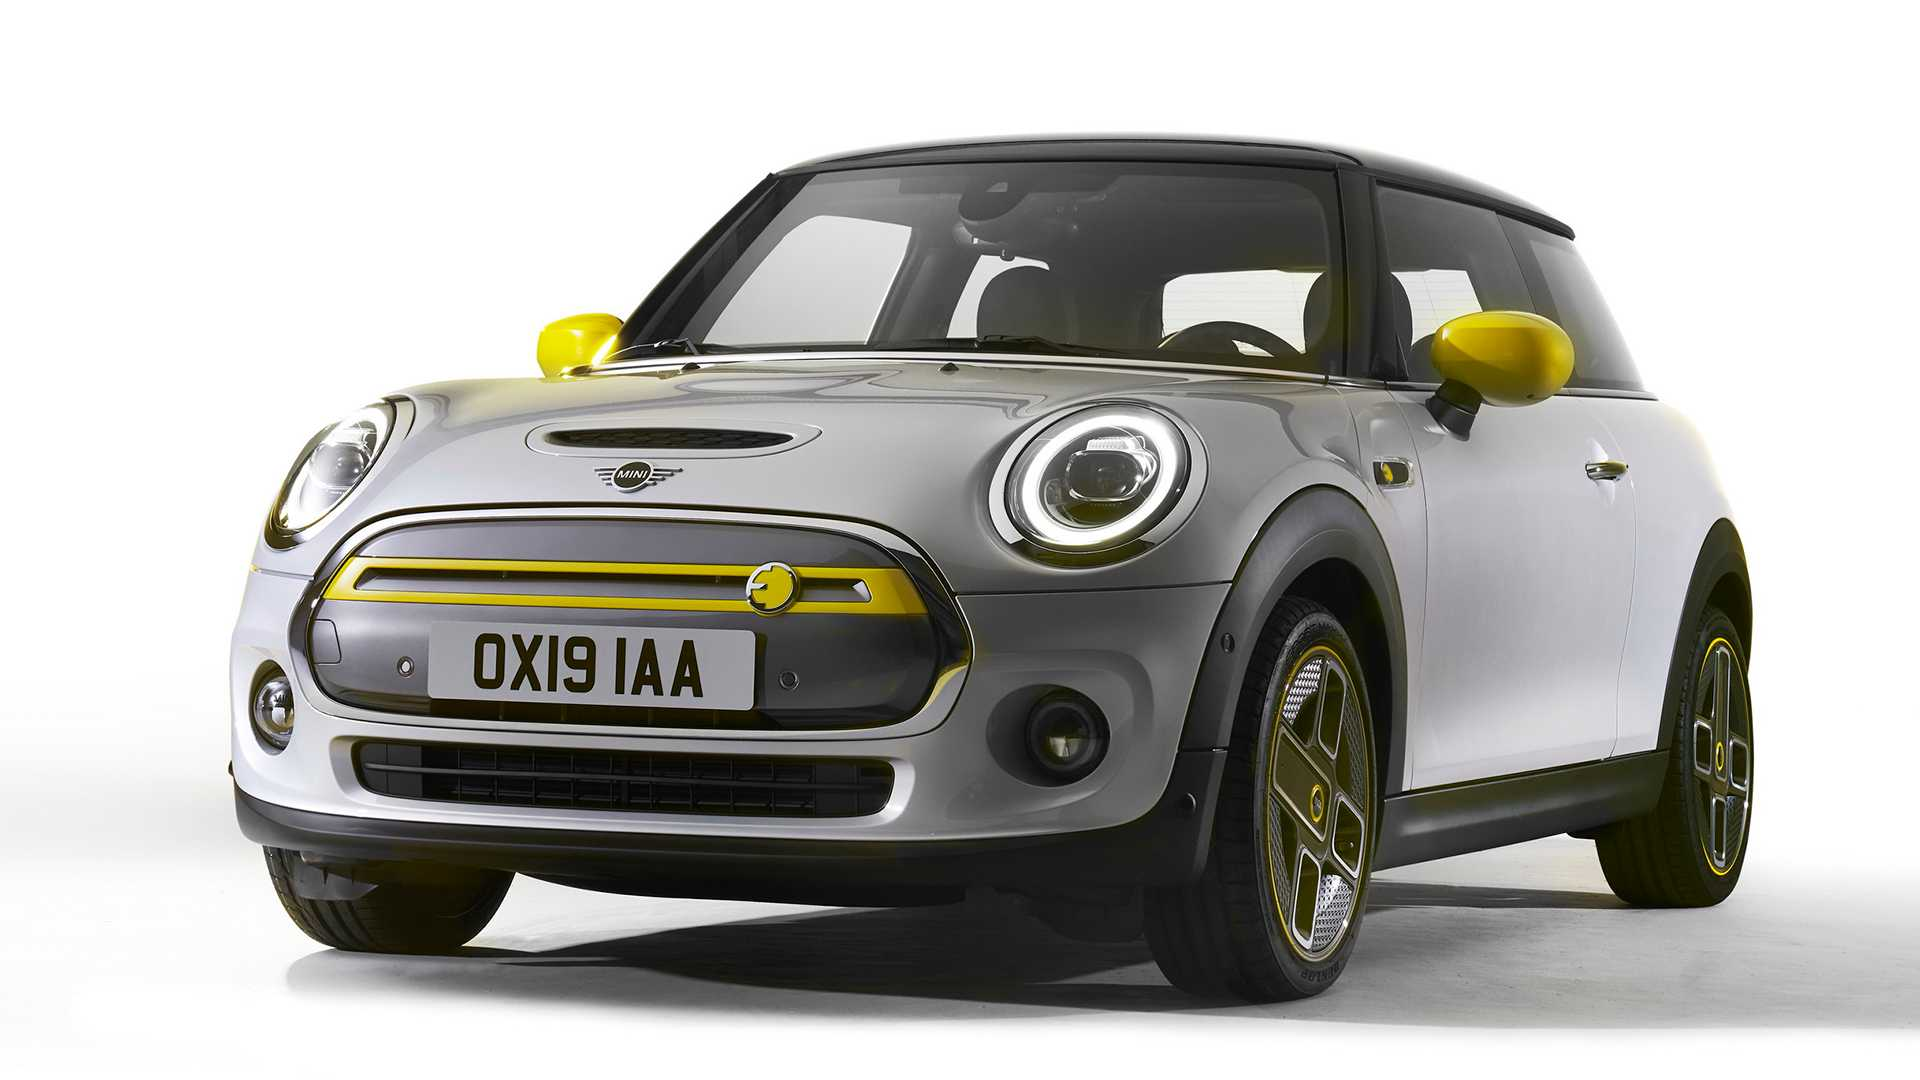 MINI Cooper SE press image front